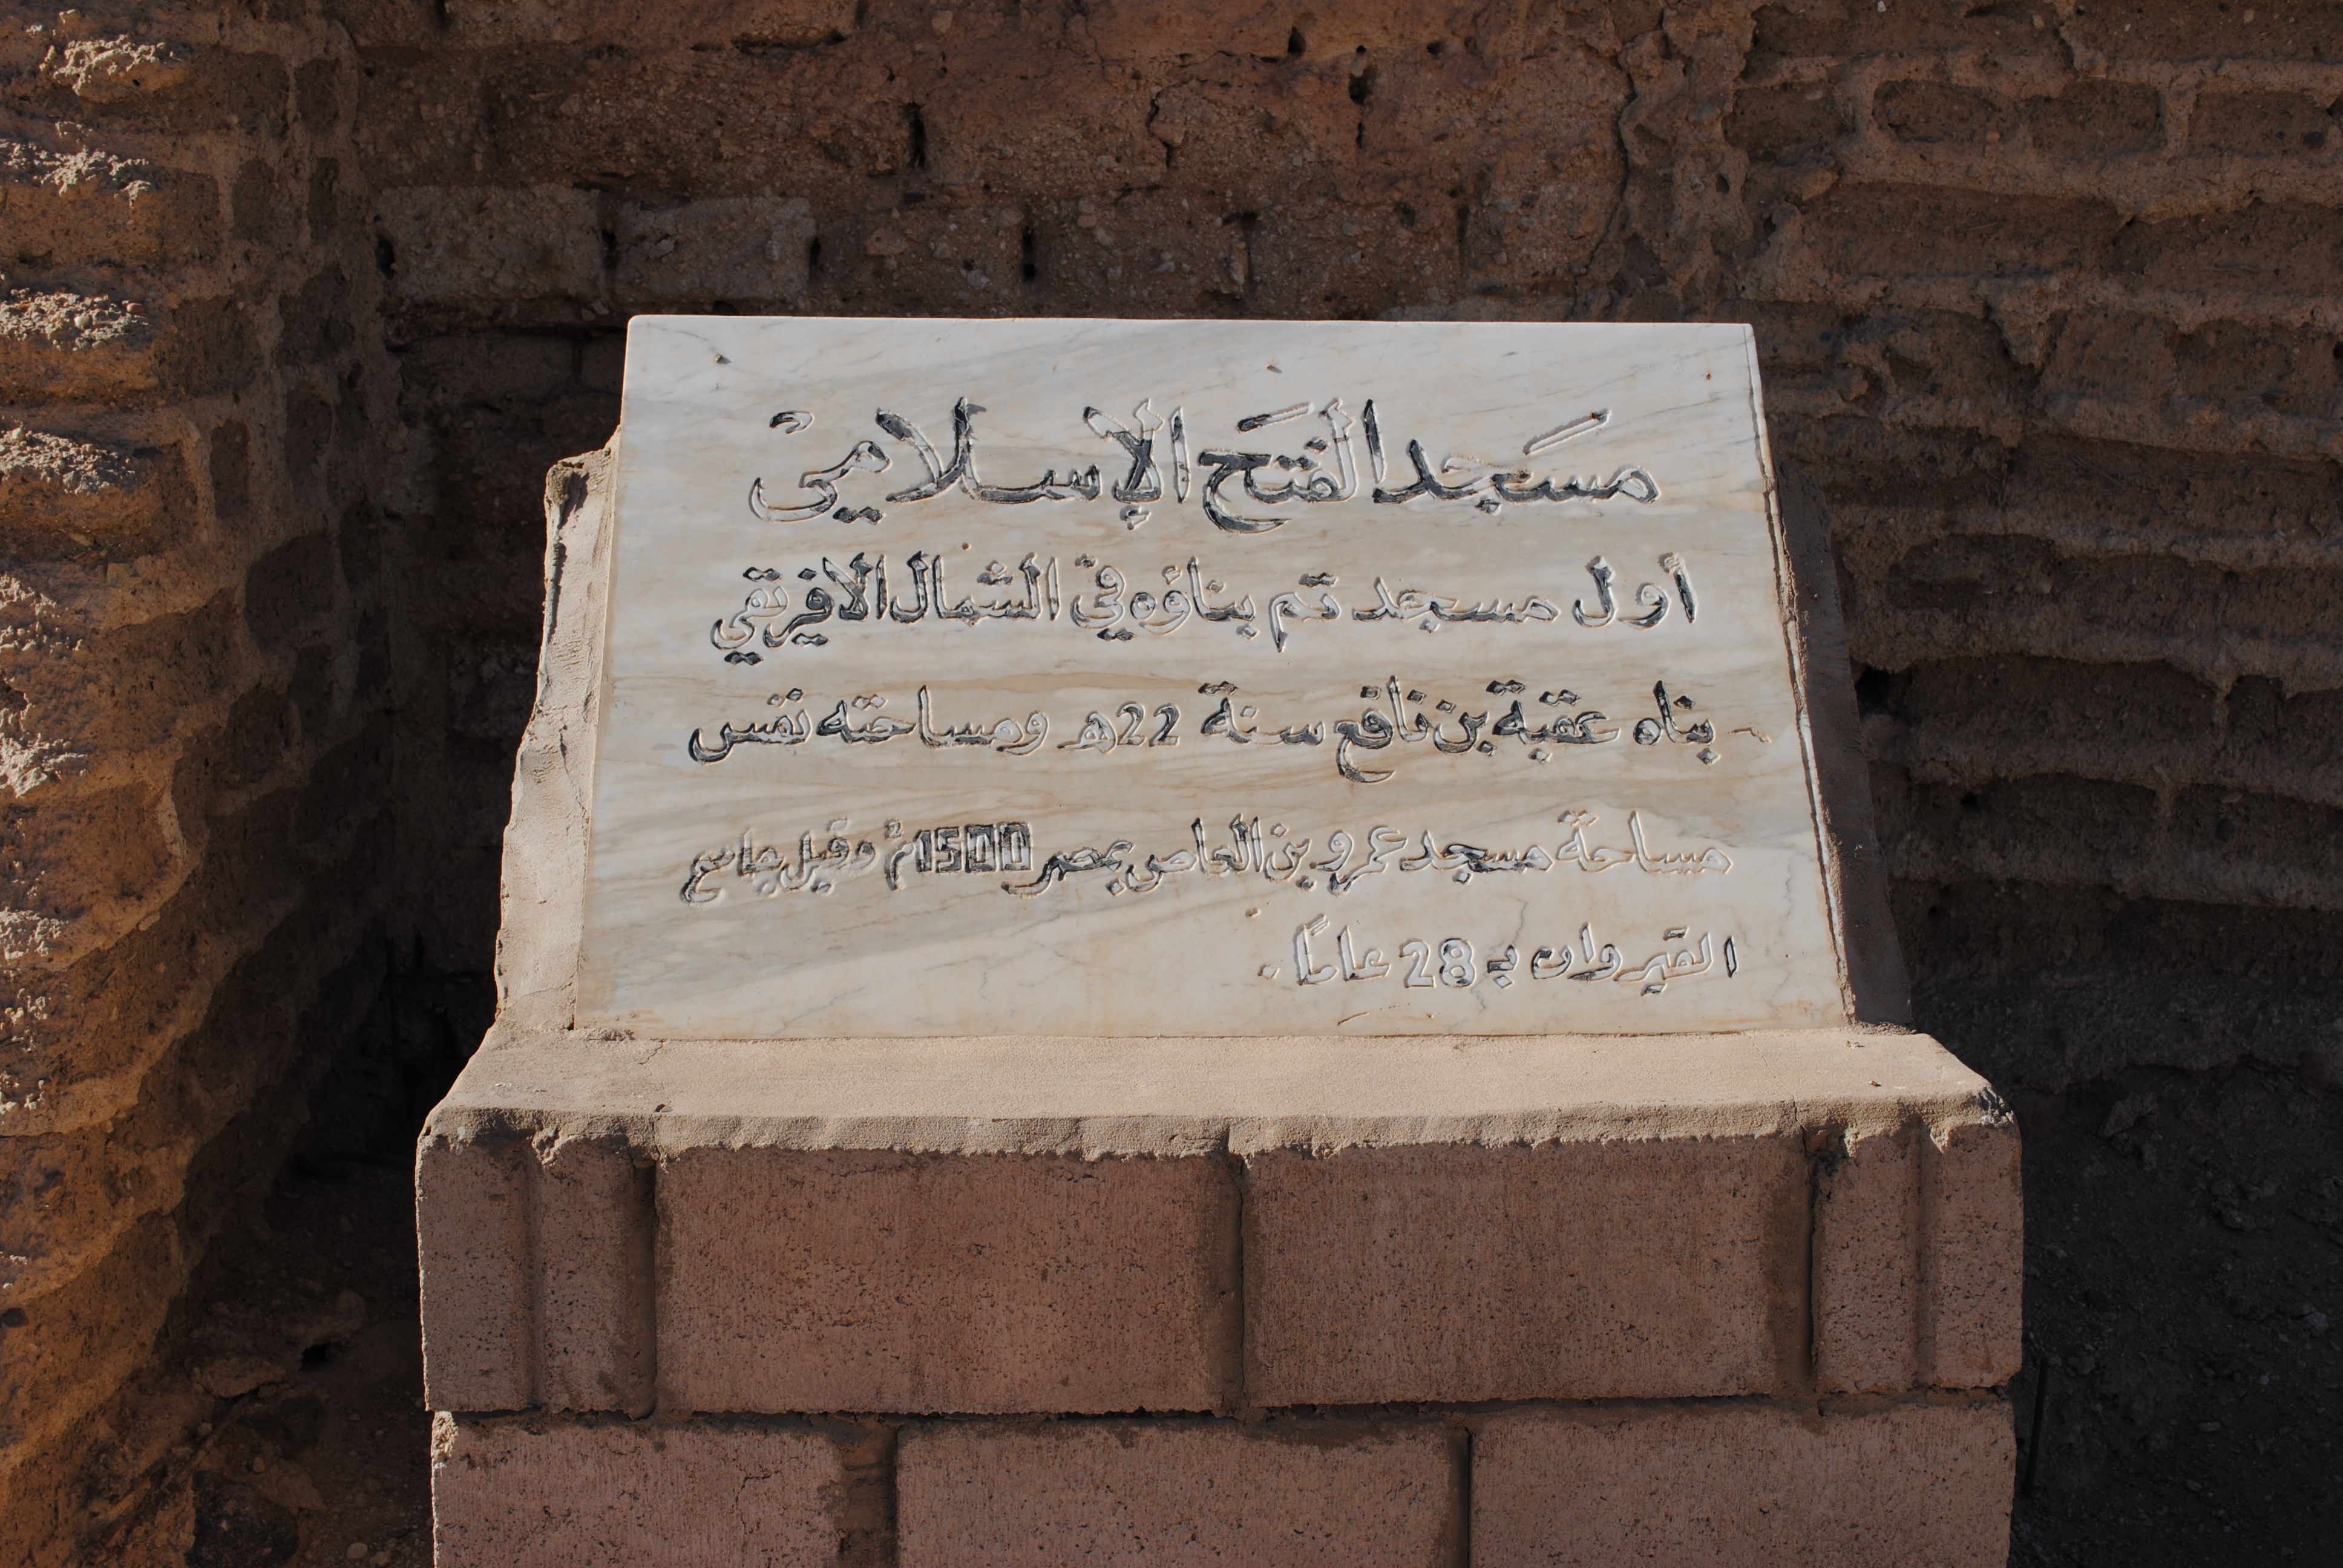 Plaque in front of the mosque